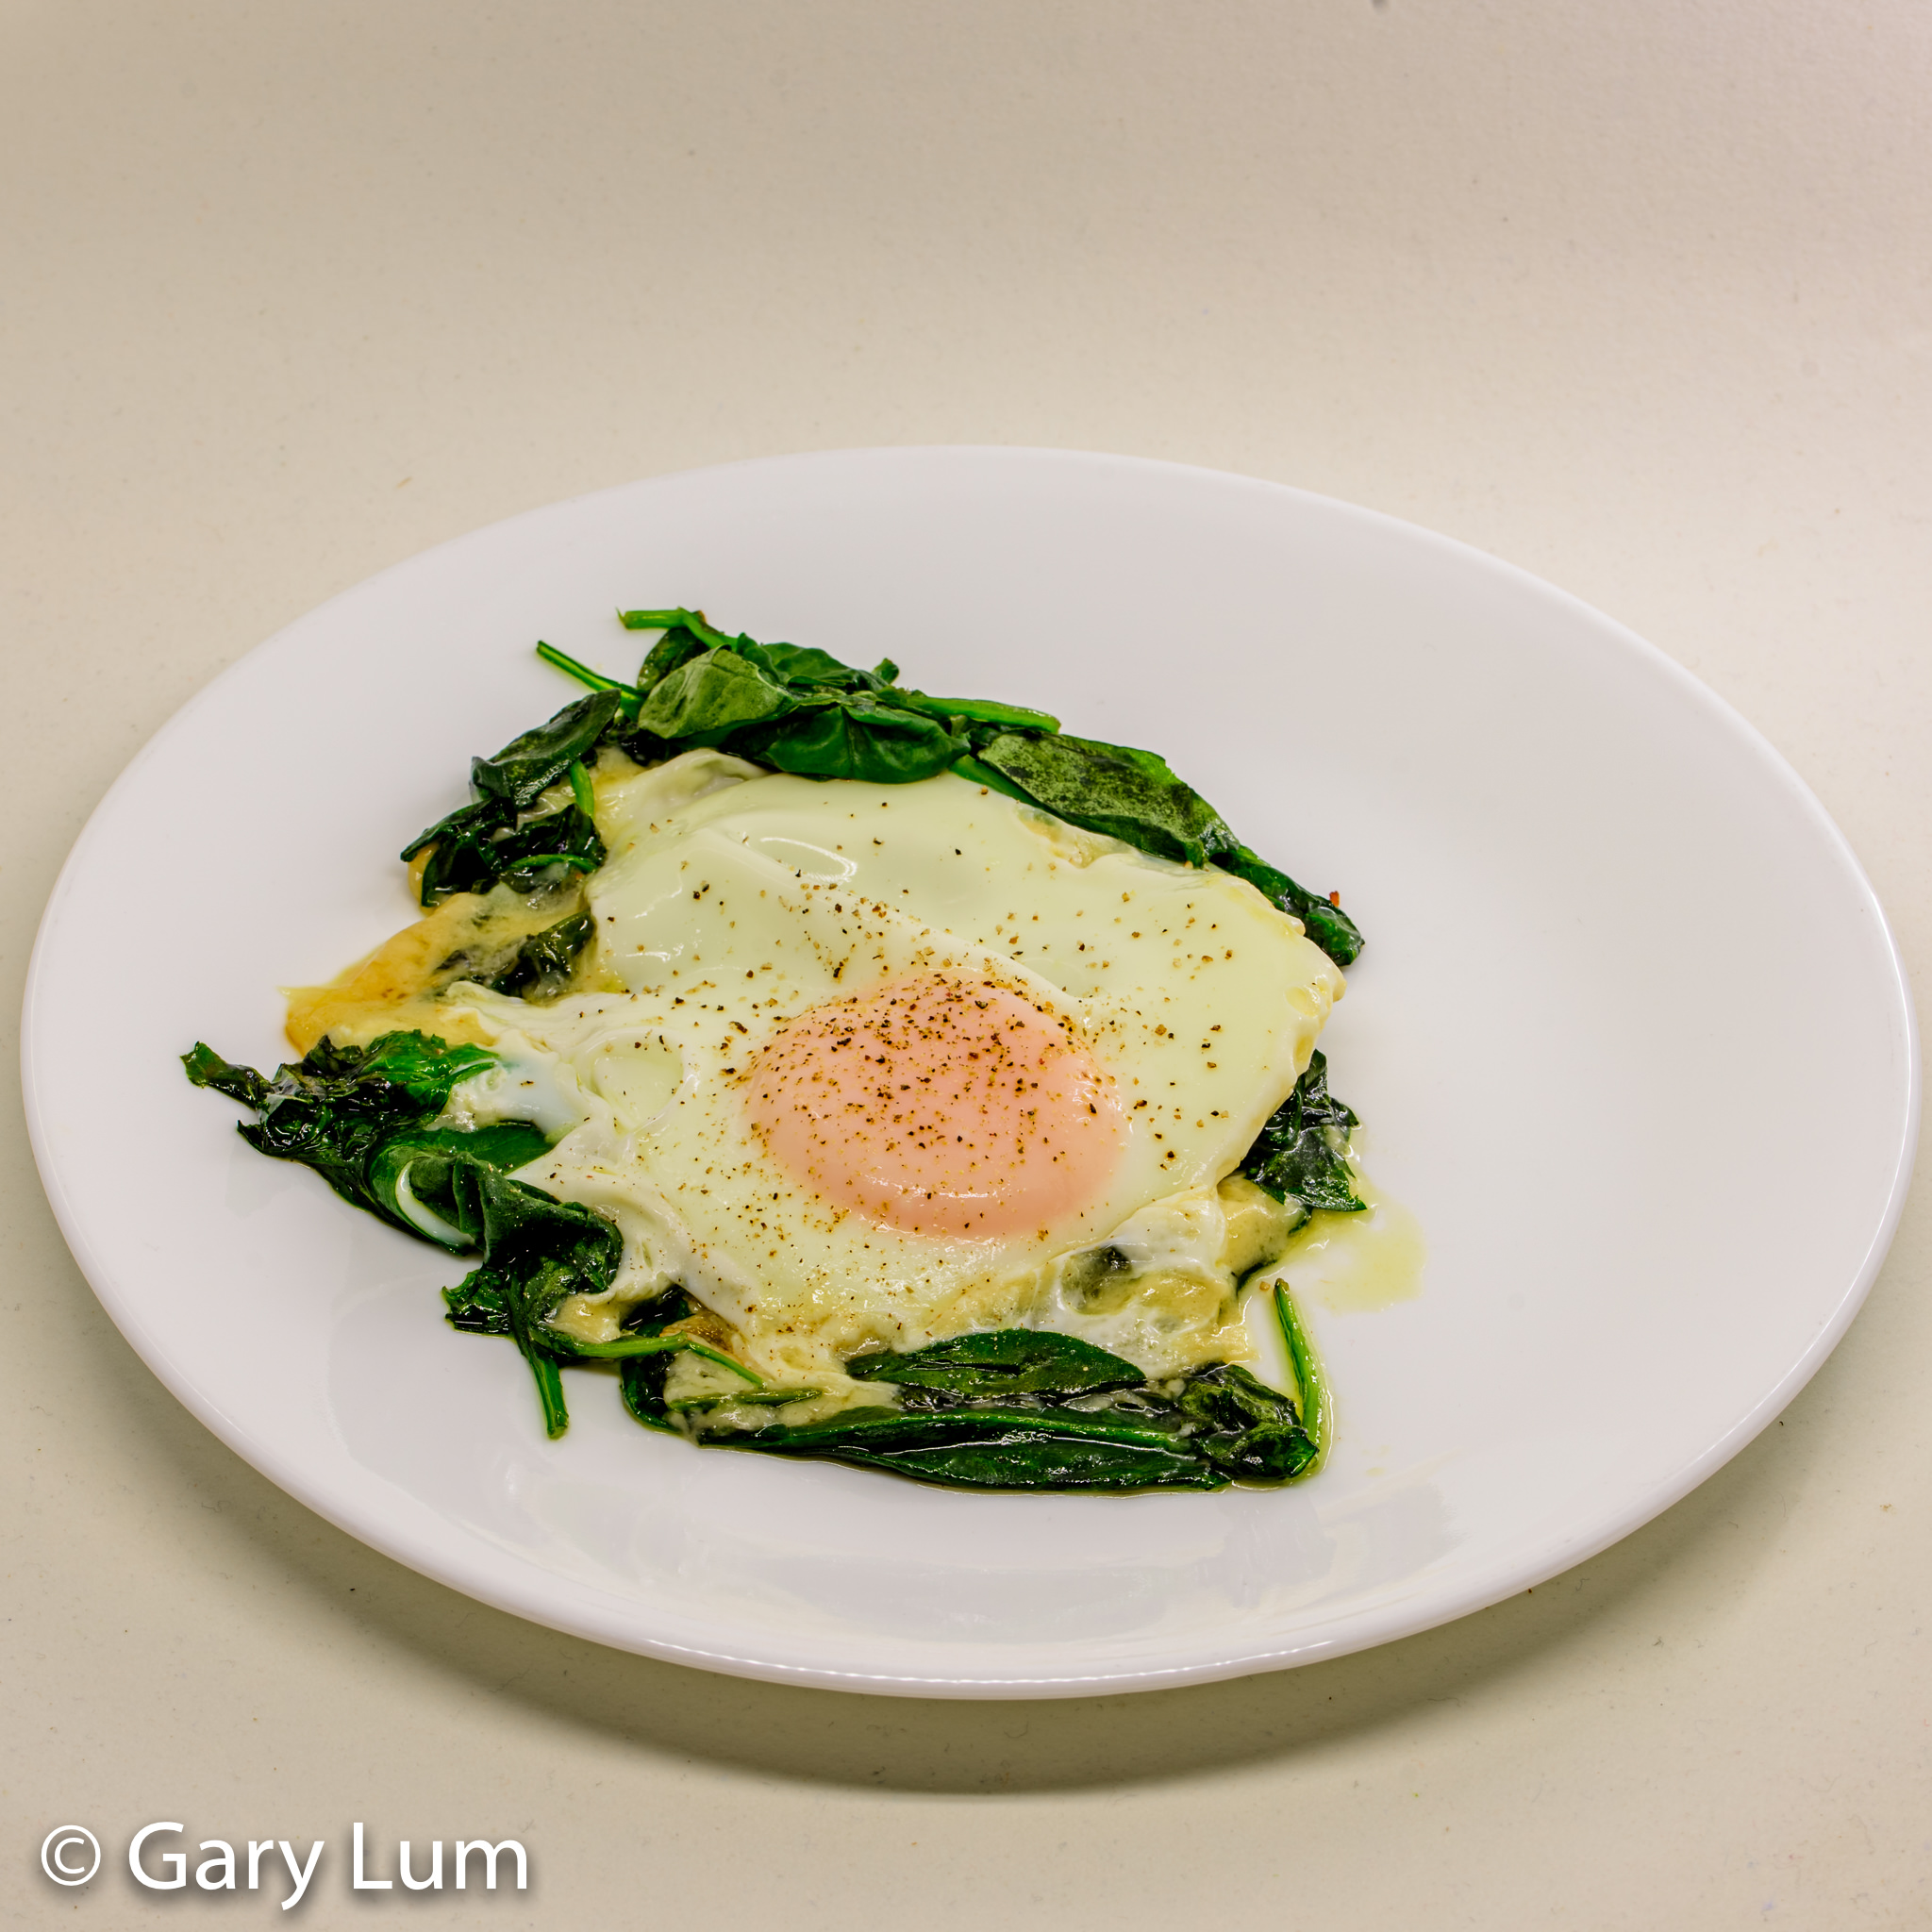 Steamed egg, melted cheese, and wilted spinach leaves. Gary Lum.